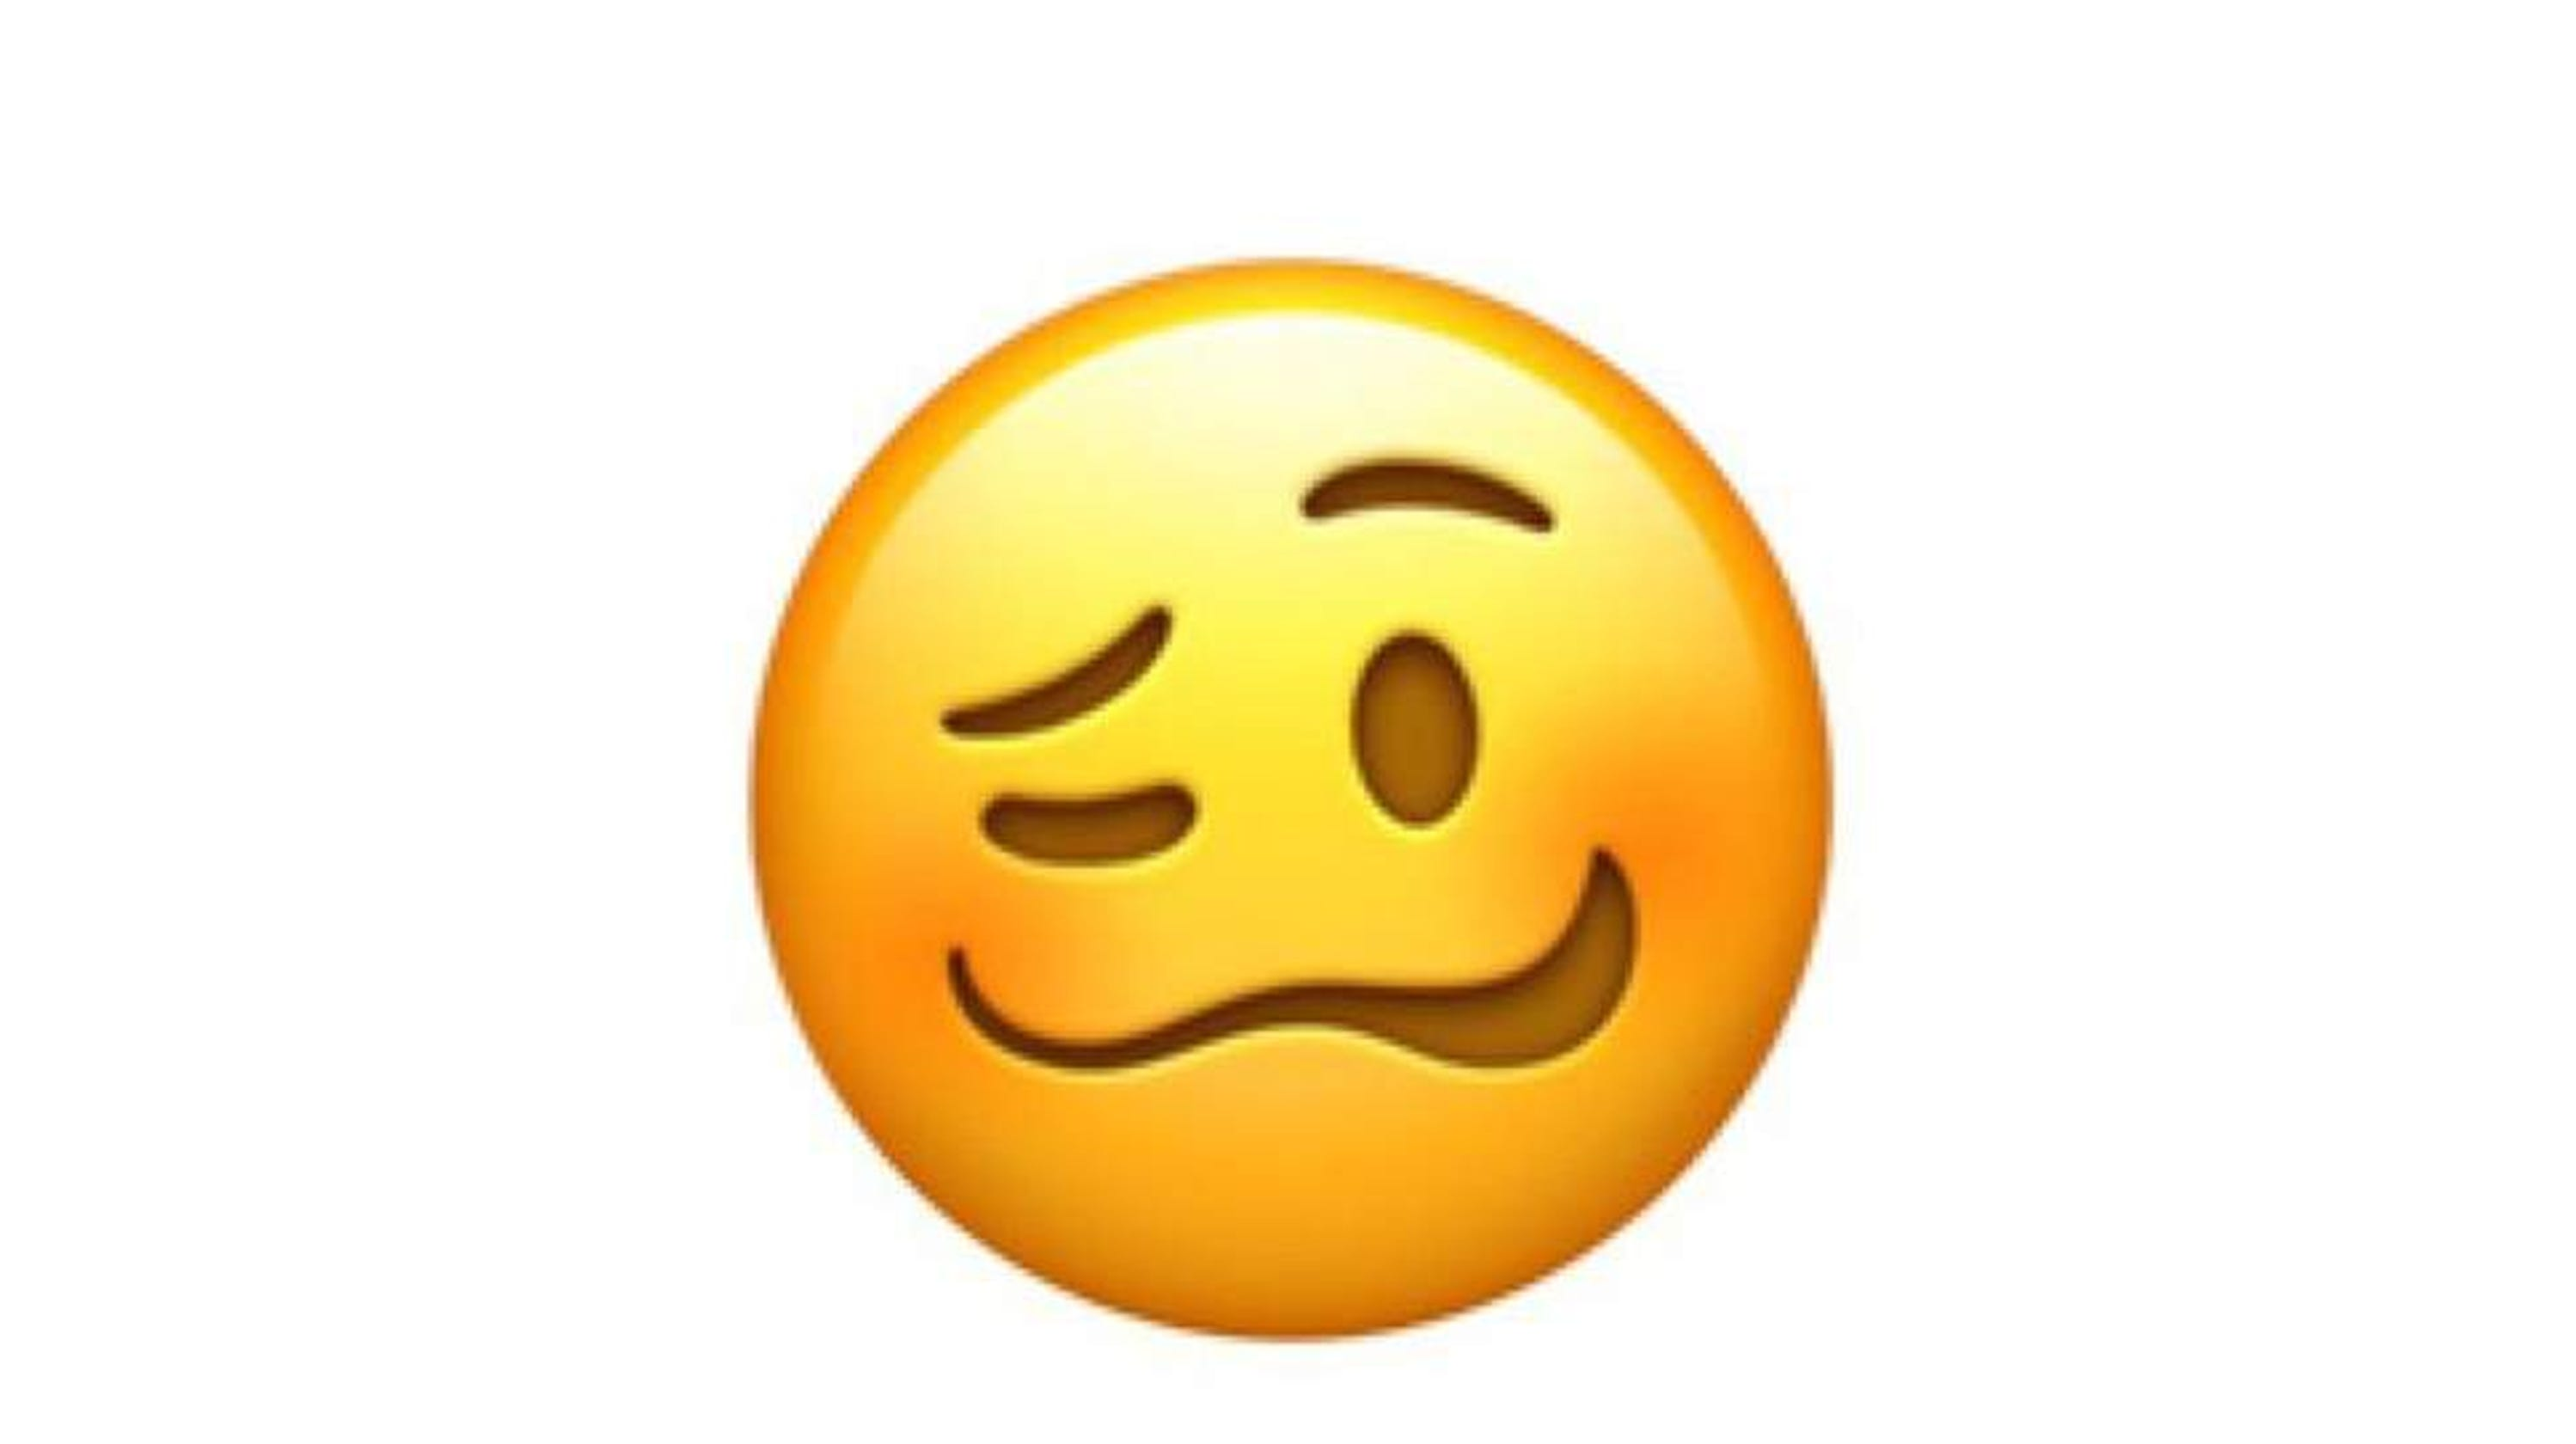 The internet is confused what does the new woozy face emoji mean